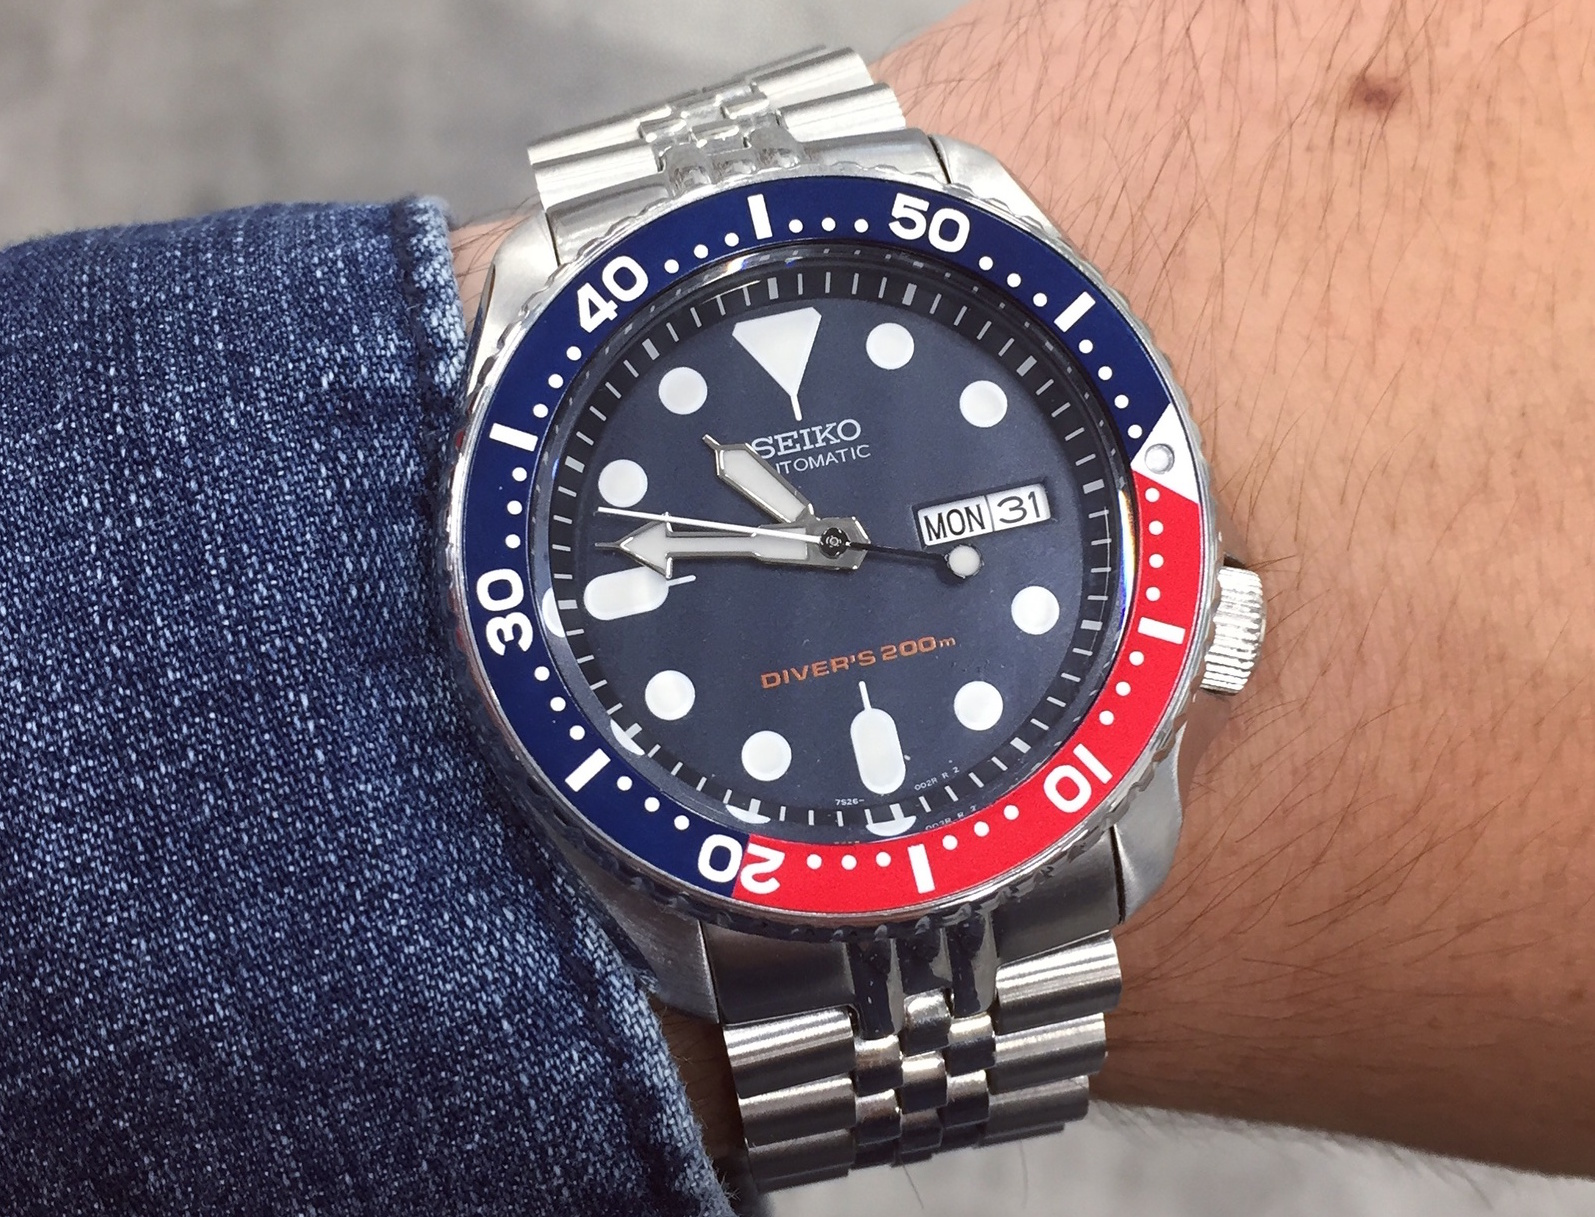 Seiko SKX175 Automatic Dive Watch Review